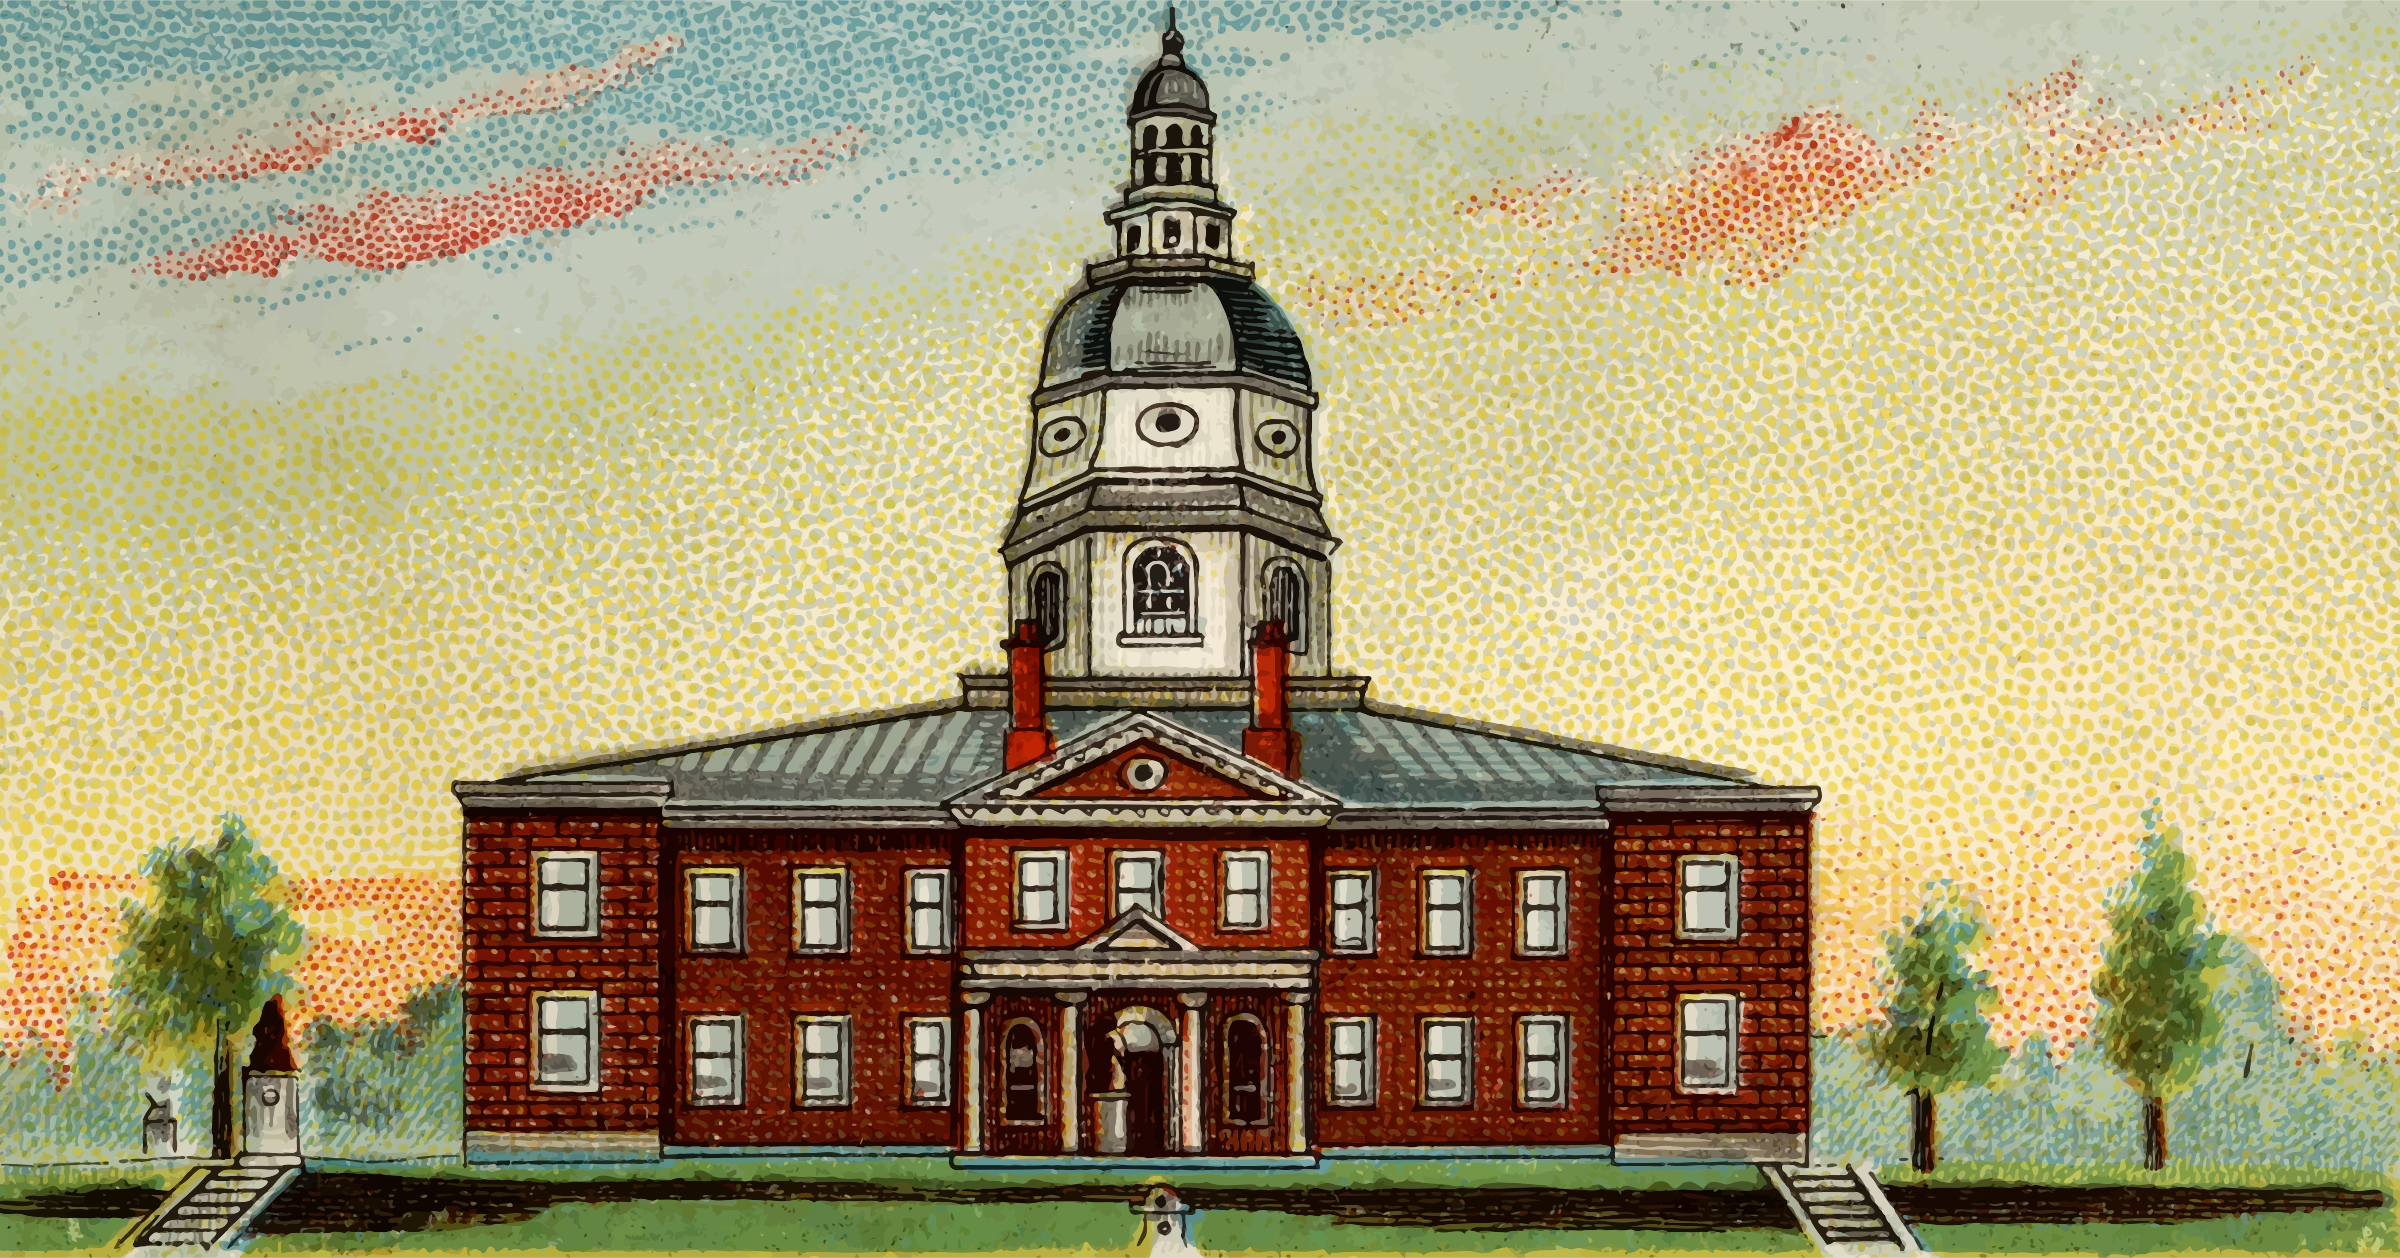 Cigarette Card - Capitol Building of Maryland by Firkin